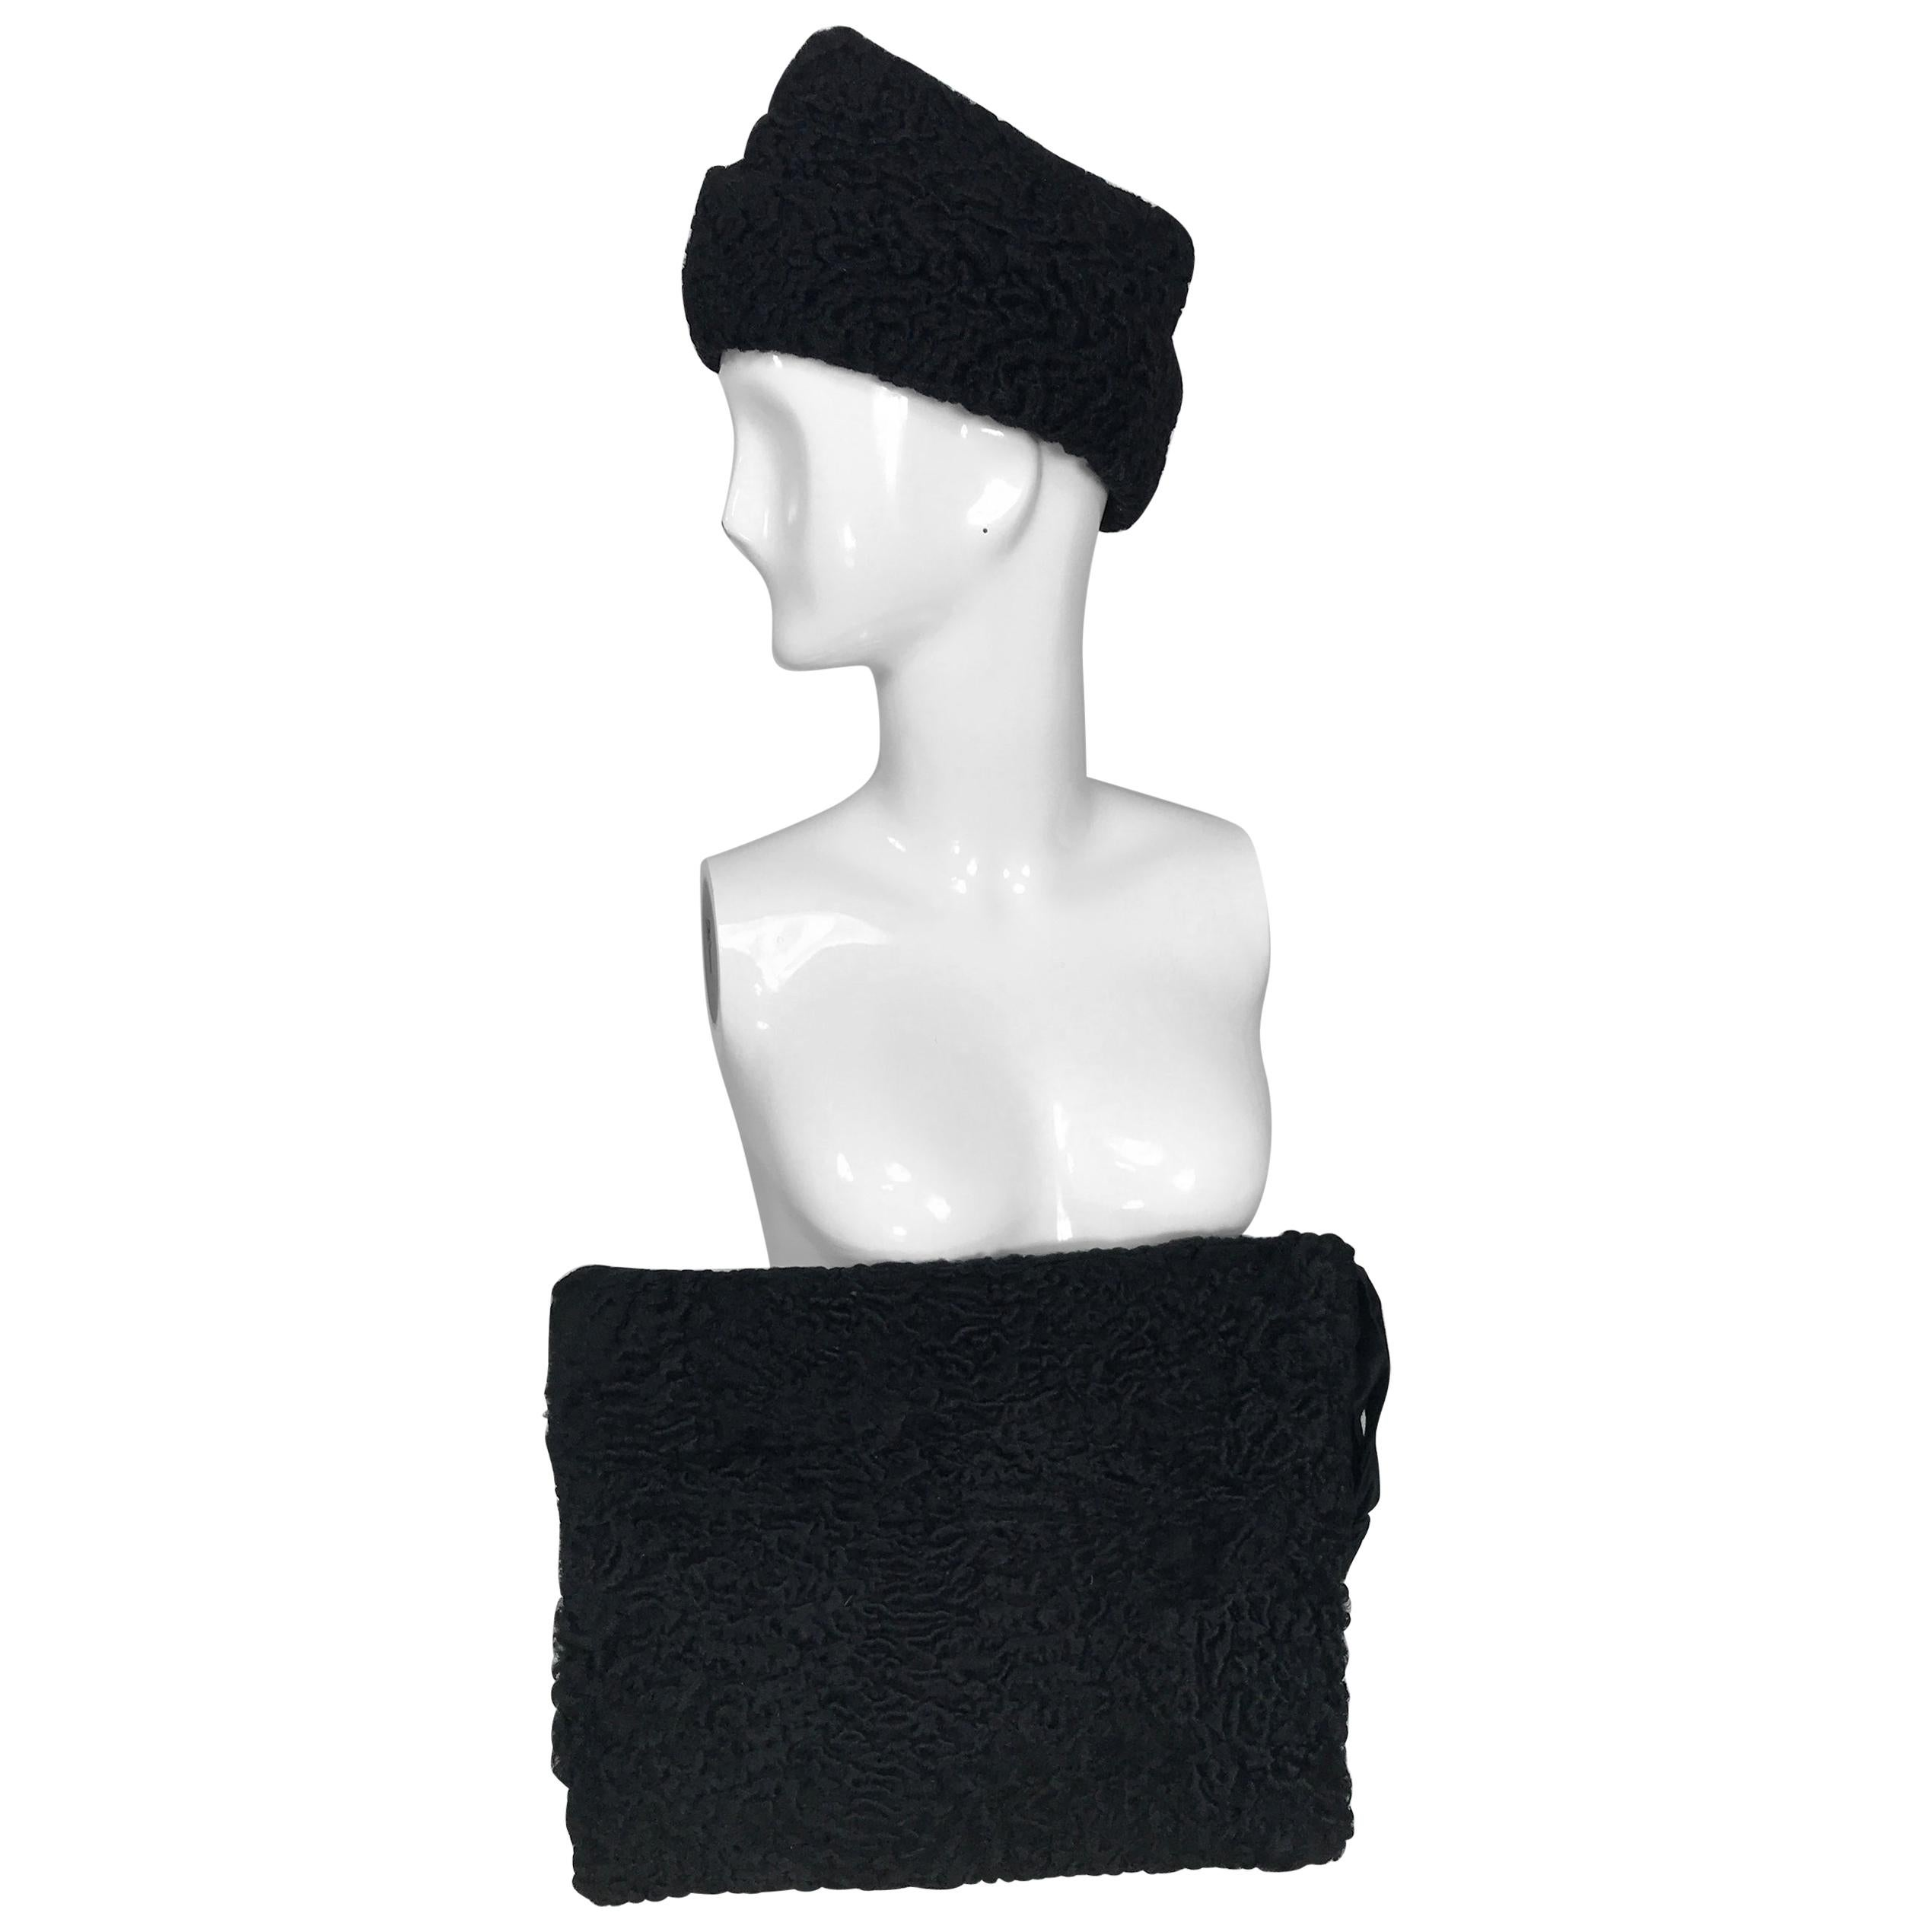 1940s Black Persian Lamb Angled Hat and Muff Purse Vintage